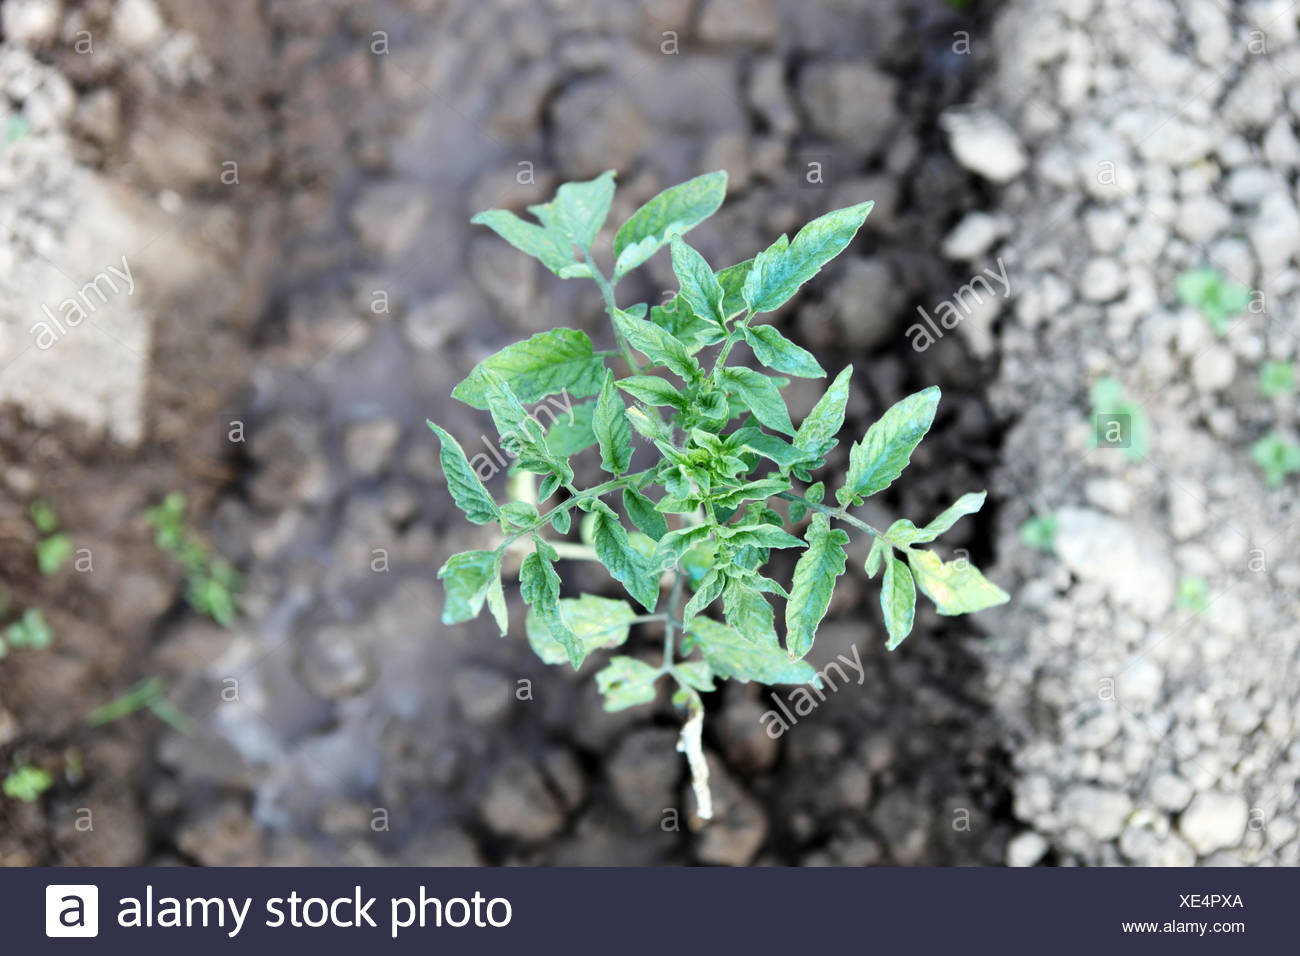 Tomato seedling - Stock Image